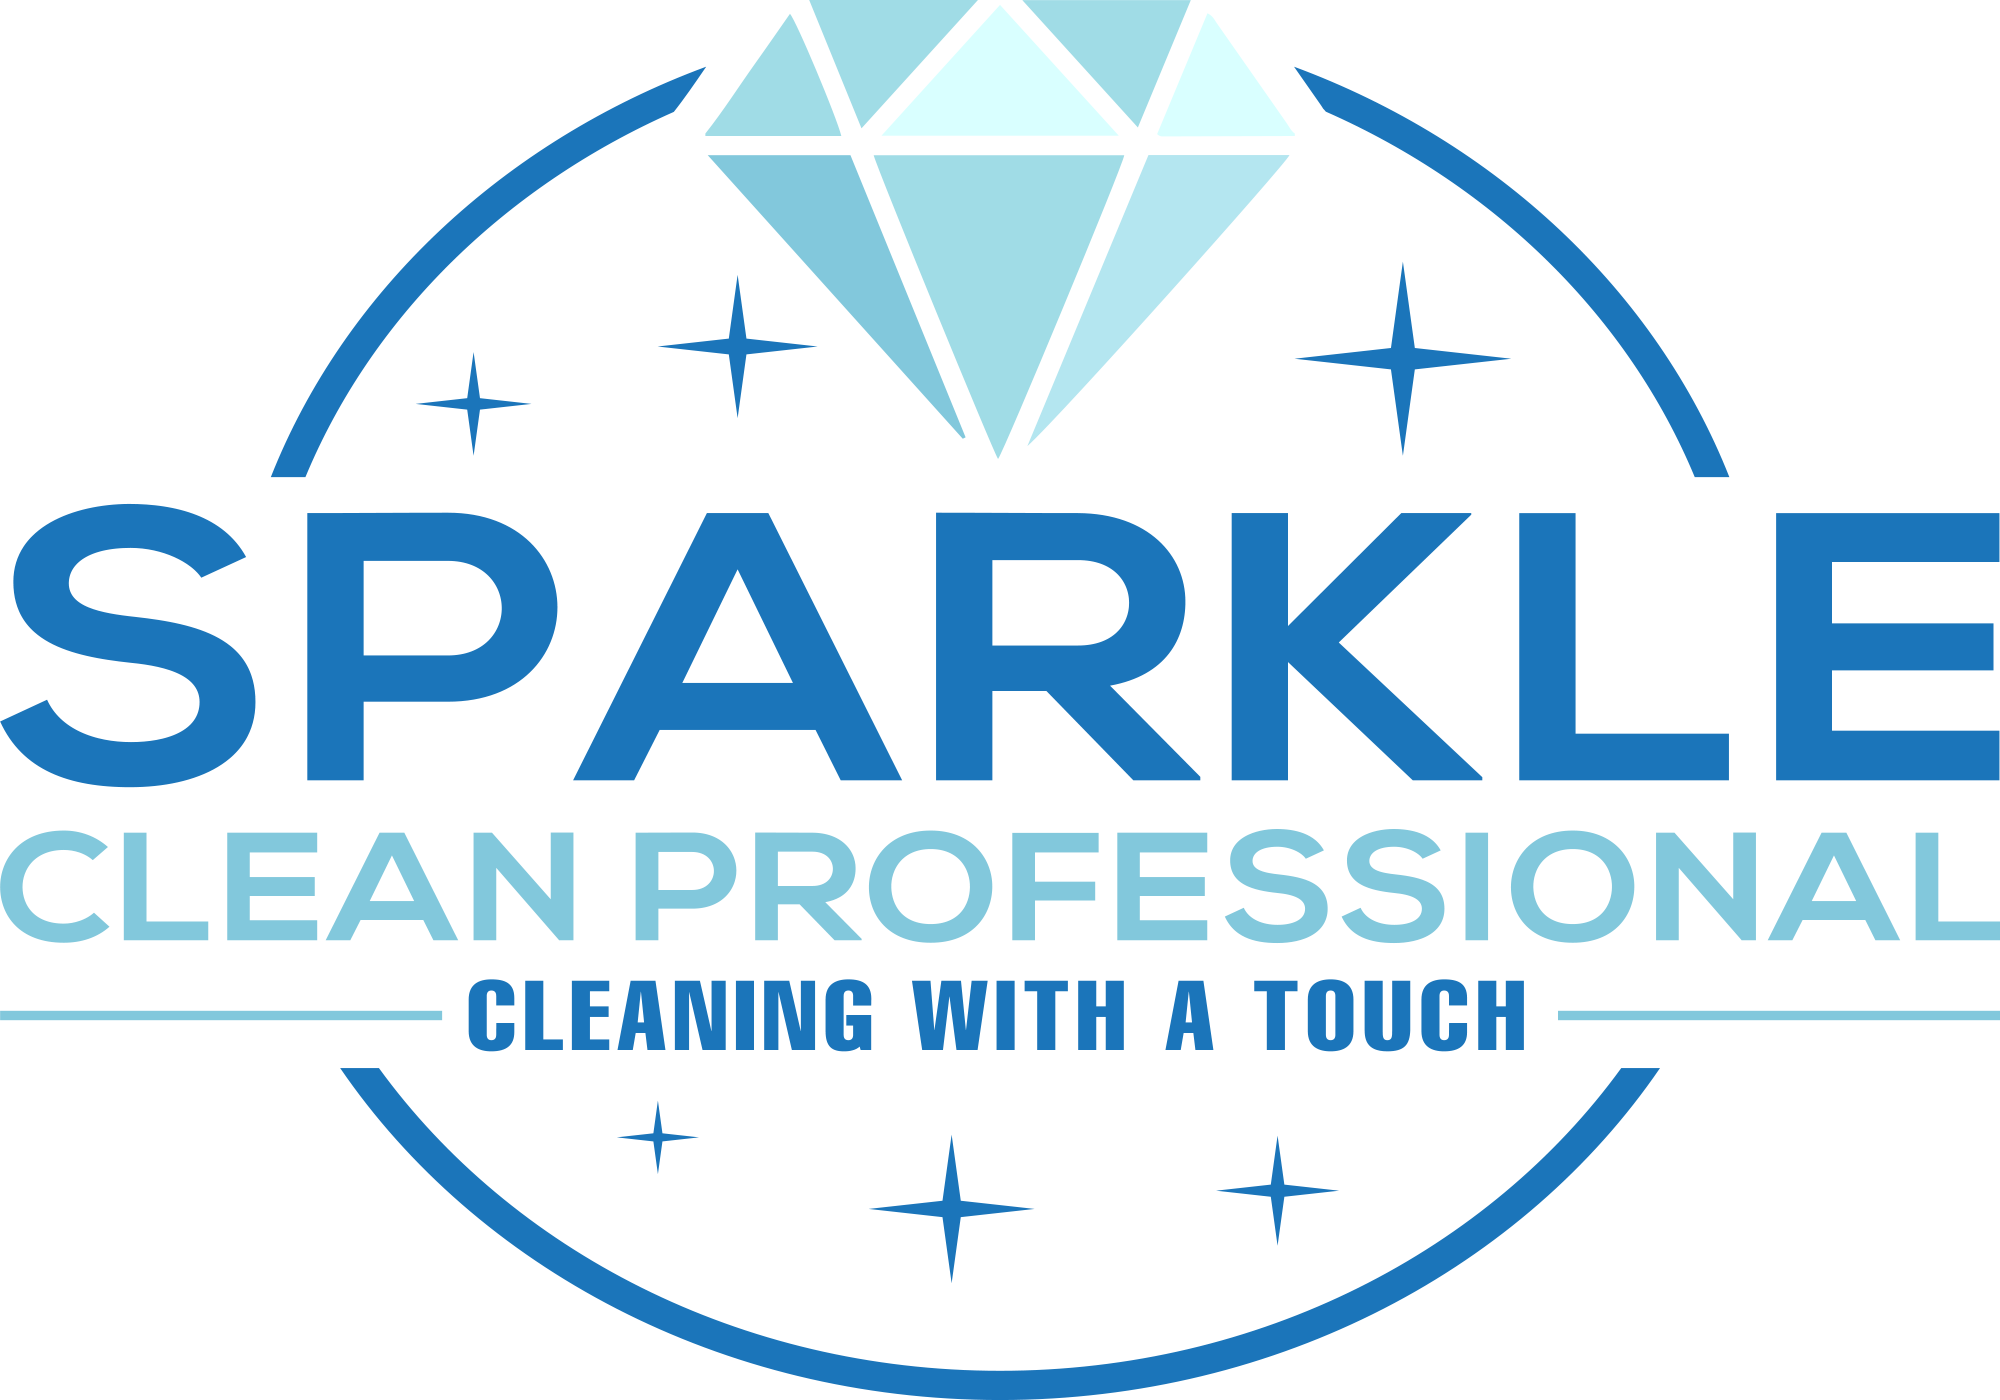 The Sparkle Clean Professional Logo.